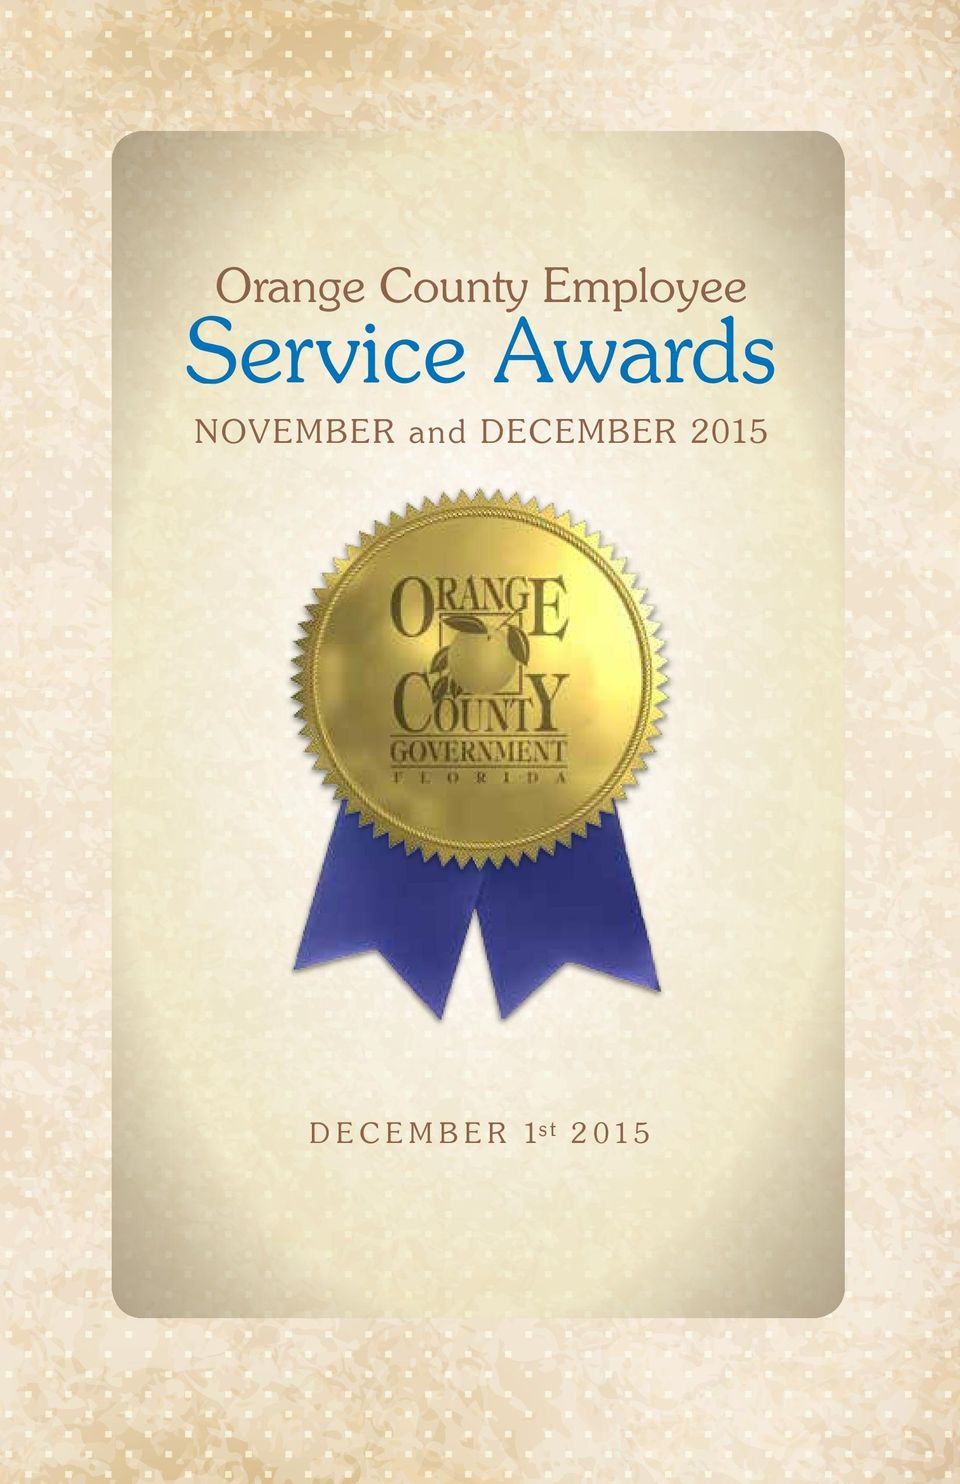 Orange County Employee Service Awards November And. Rental Car Companies New Zealand. San Francisco Bail Bonds Email Drip Campaigns. Criminal Justice Qualifications. Plastic Surgery Malpractice Cases. Bariatric Surgery Doctors Reno Used Car Sales. Masters In Education Online Degree. Sales Management Newsletter Au Pair Stipend. Appliance Repair Scottsdale Az